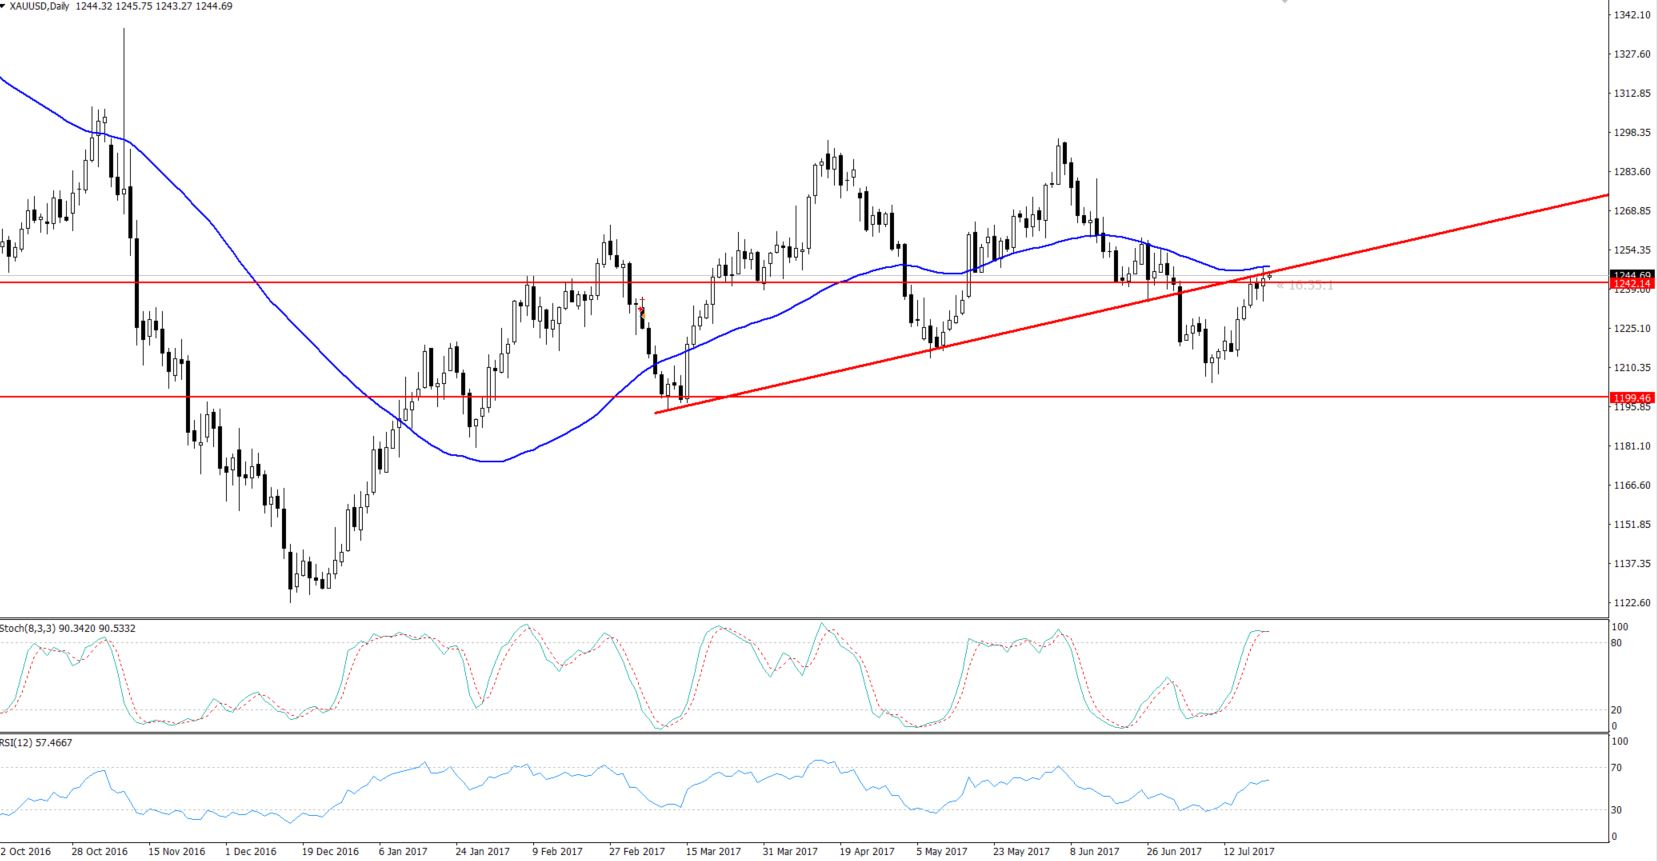 Gold - Daily Chart - Trend line Resistance